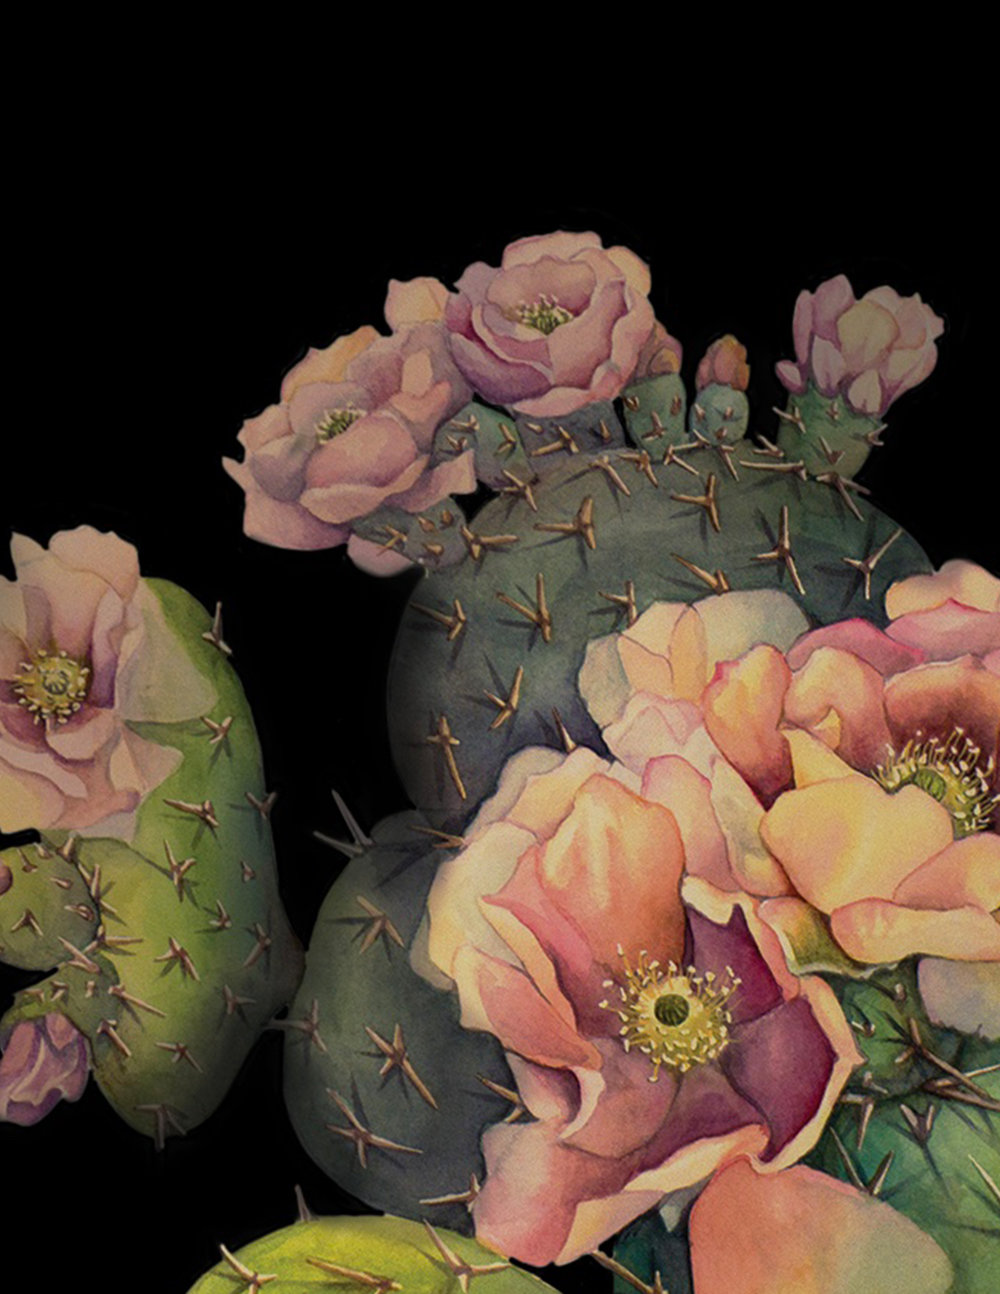 Botanical Illustration - Watercolor portraits of unusual plants, cacti, and flowers